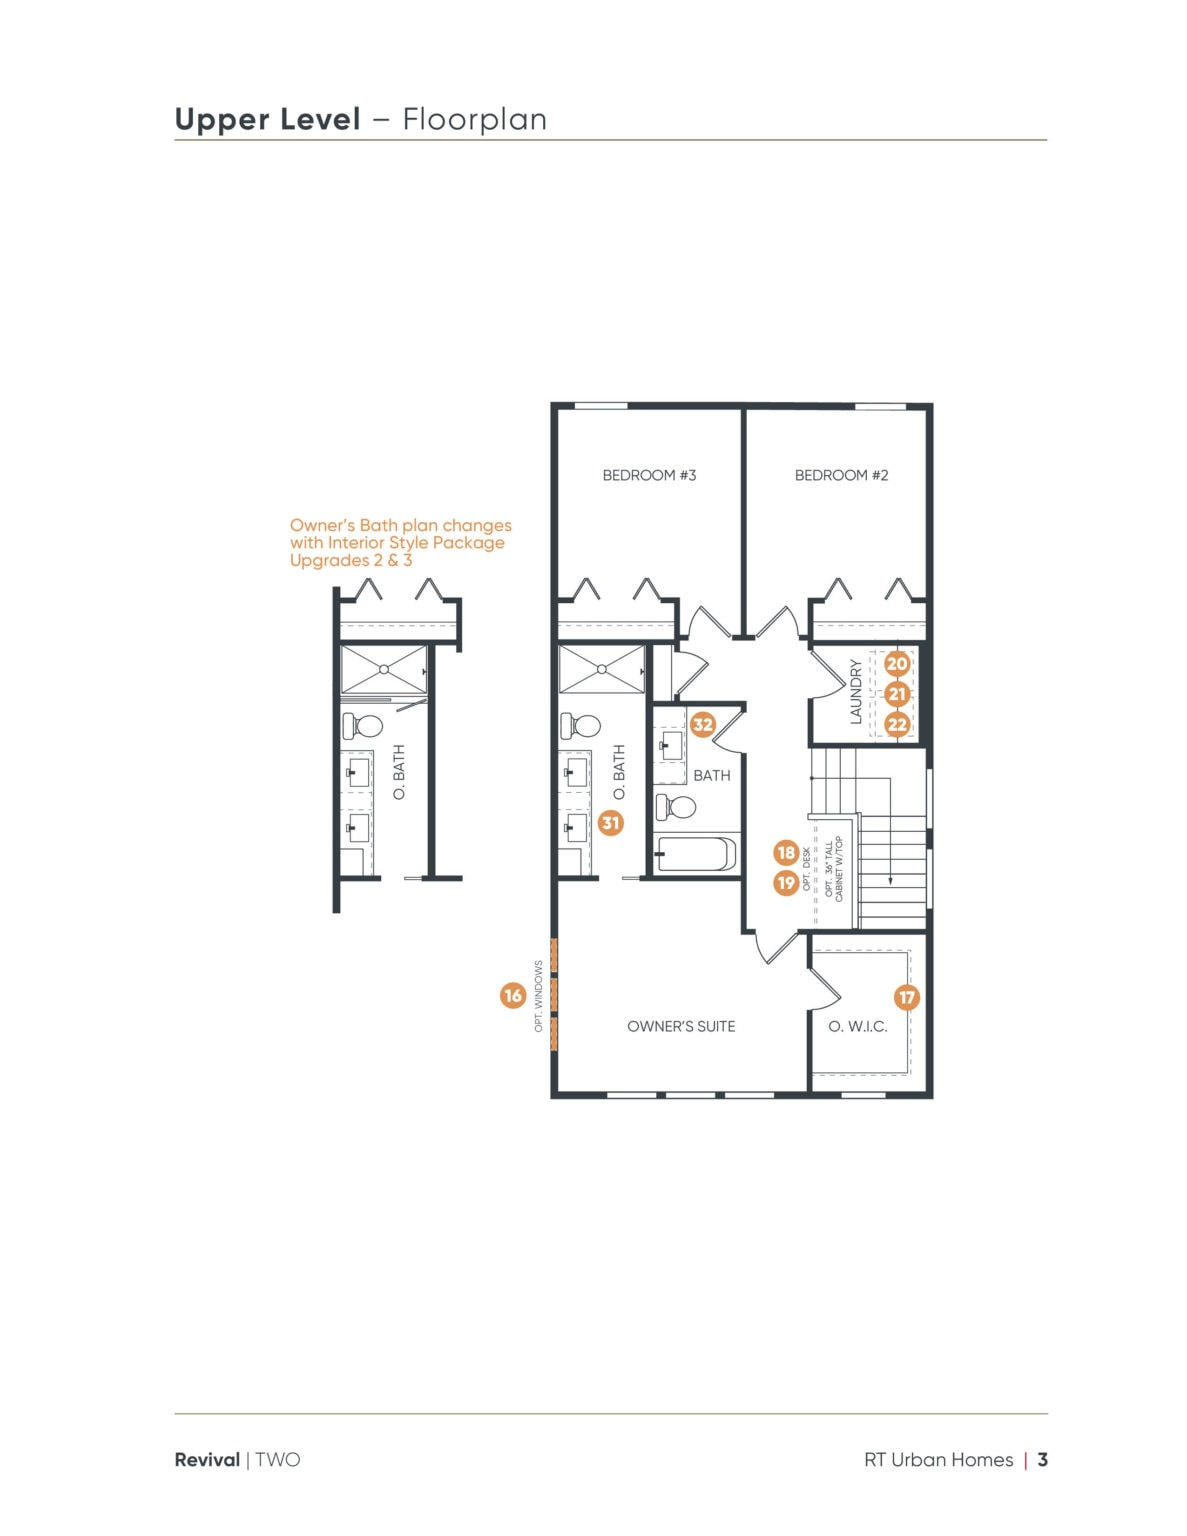 Revival TWO Floorplan Handout_022820_page 3